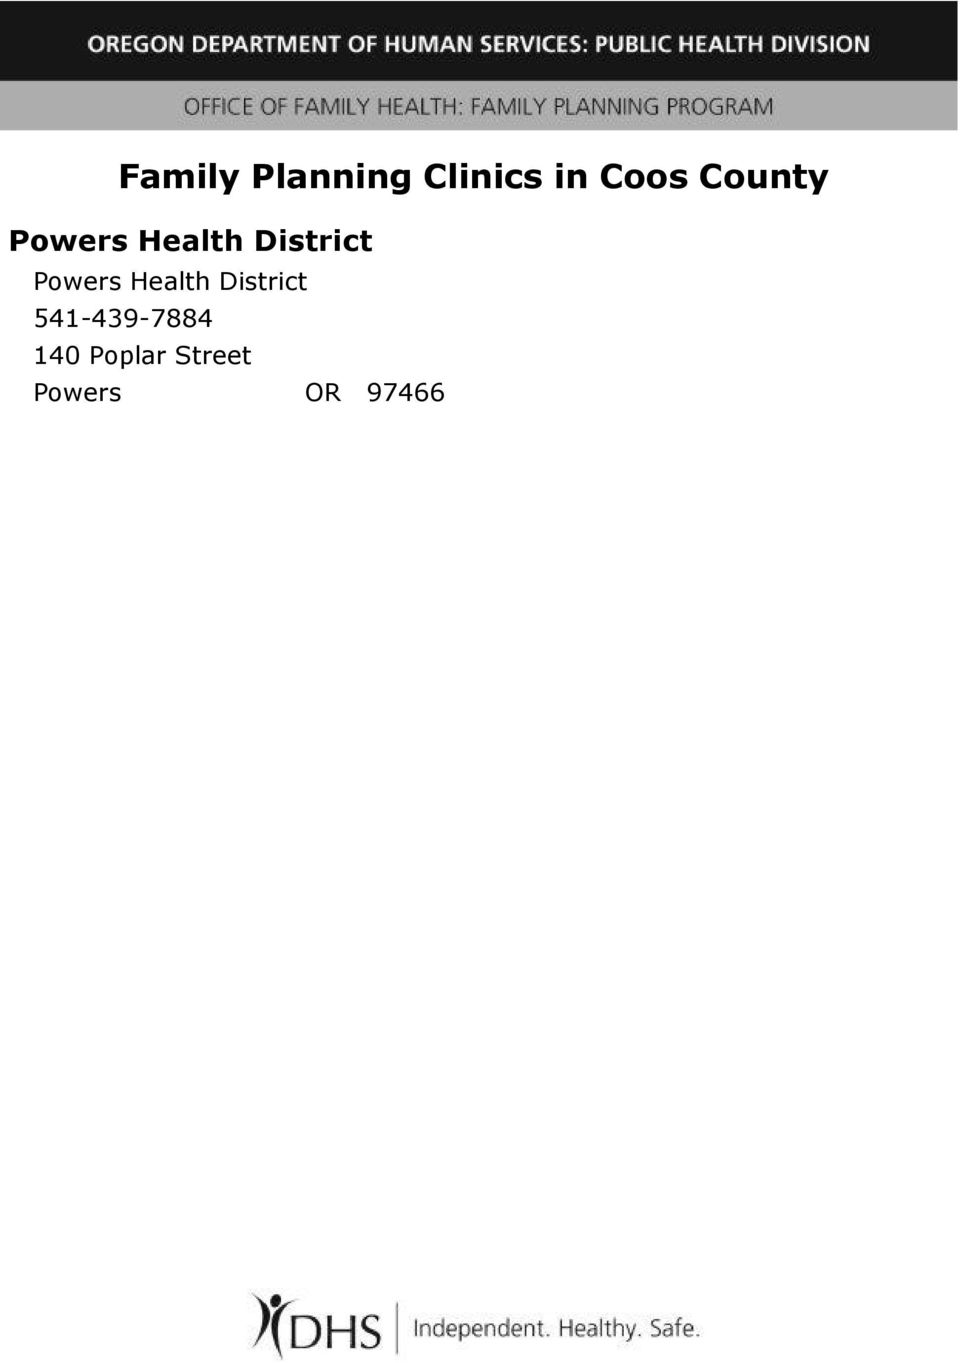 Powers Health District